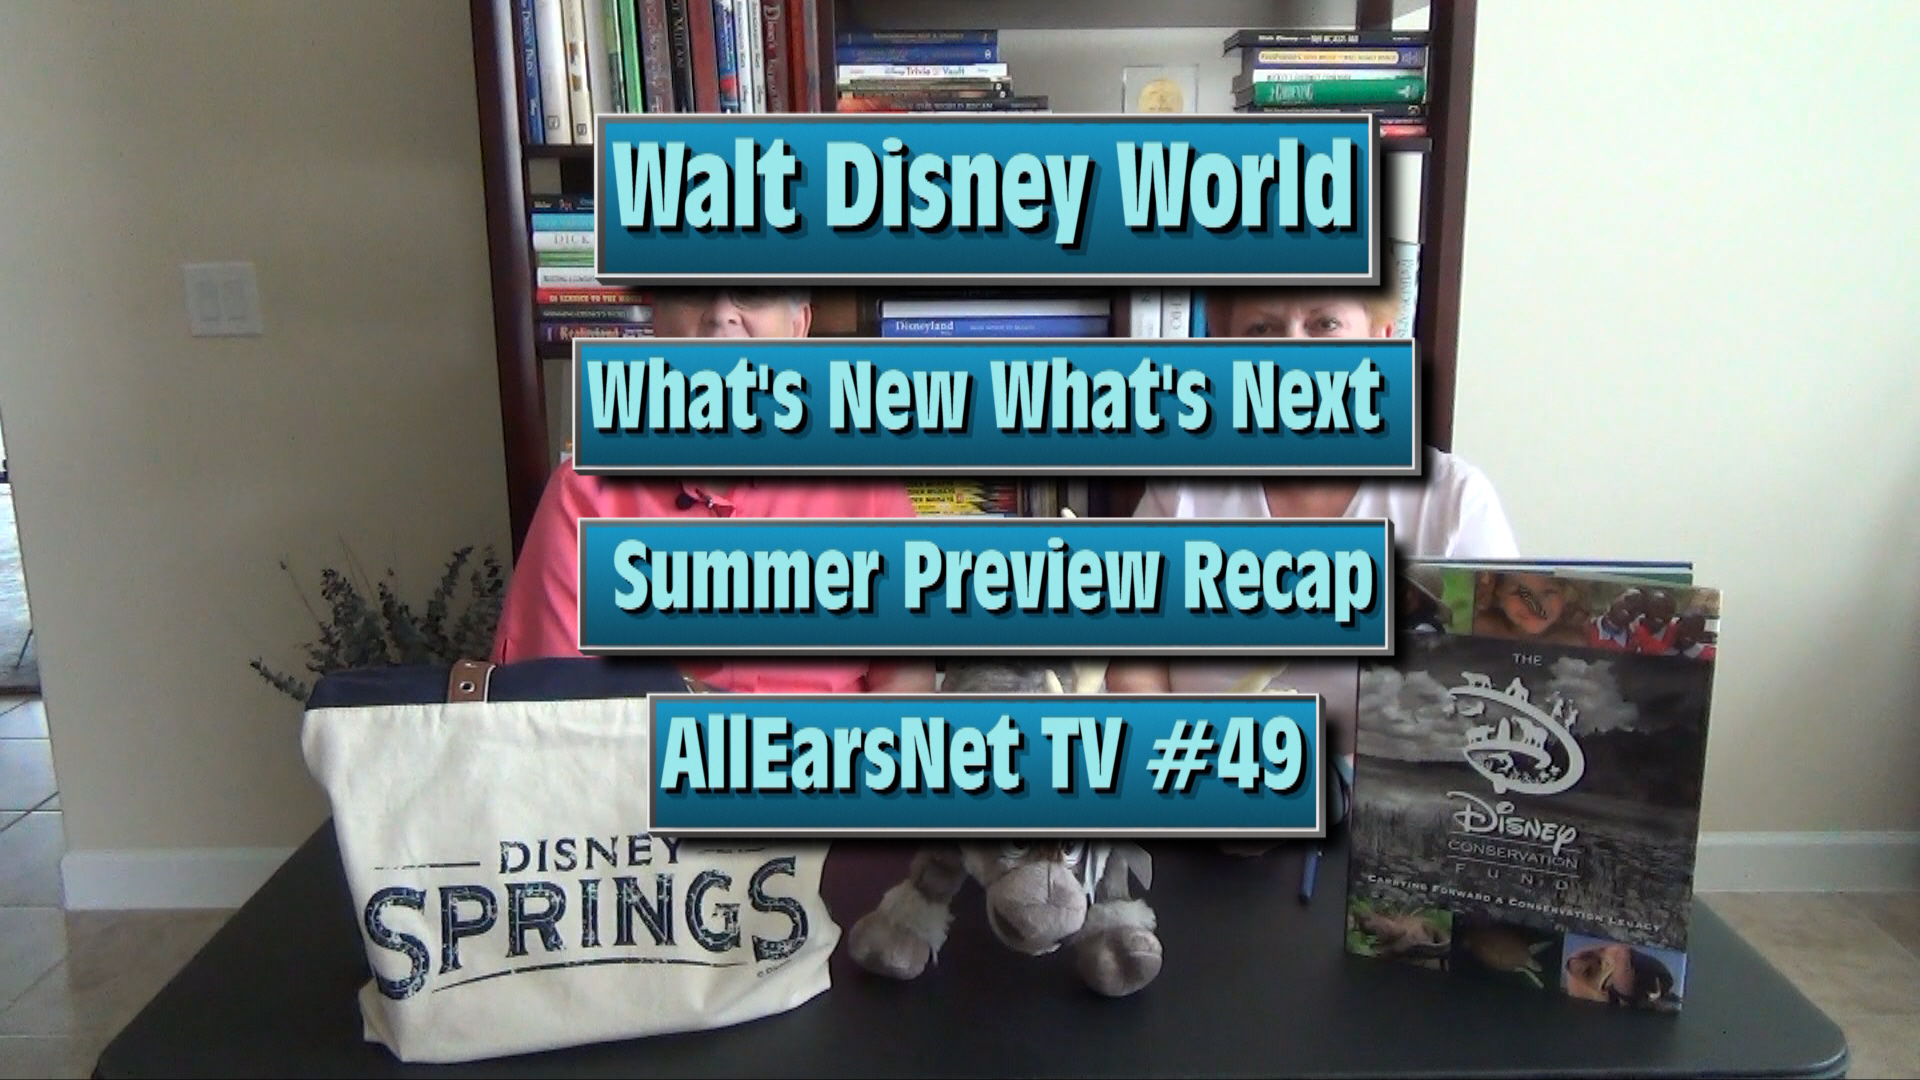 Walt Disney World Summer 2016 Preview: AllEarsNet TV #49